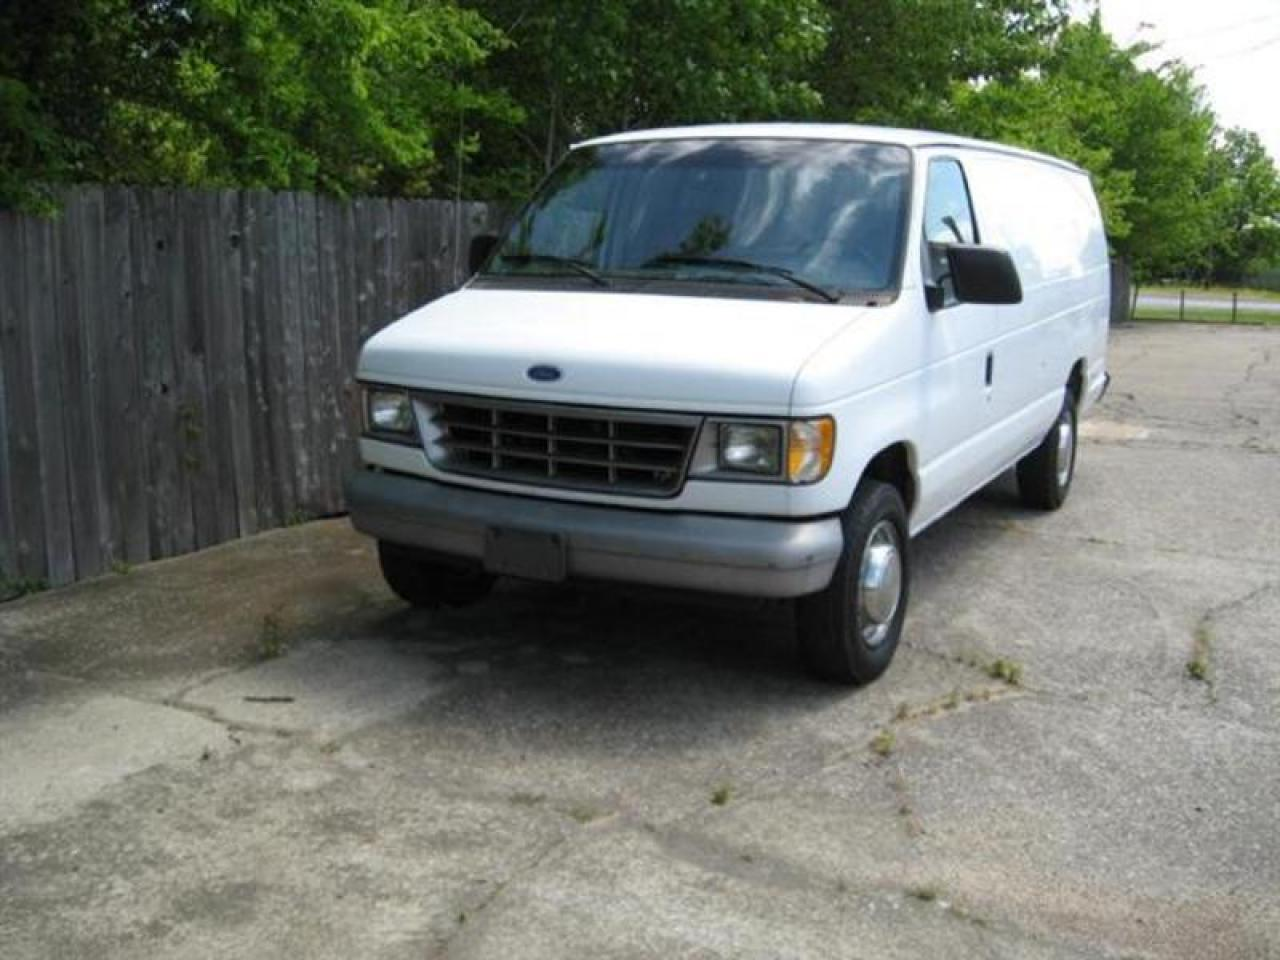 1996 ford e 250 information and photos zombiedrive. Black Bedroom Furniture Sets. Home Design Ideas